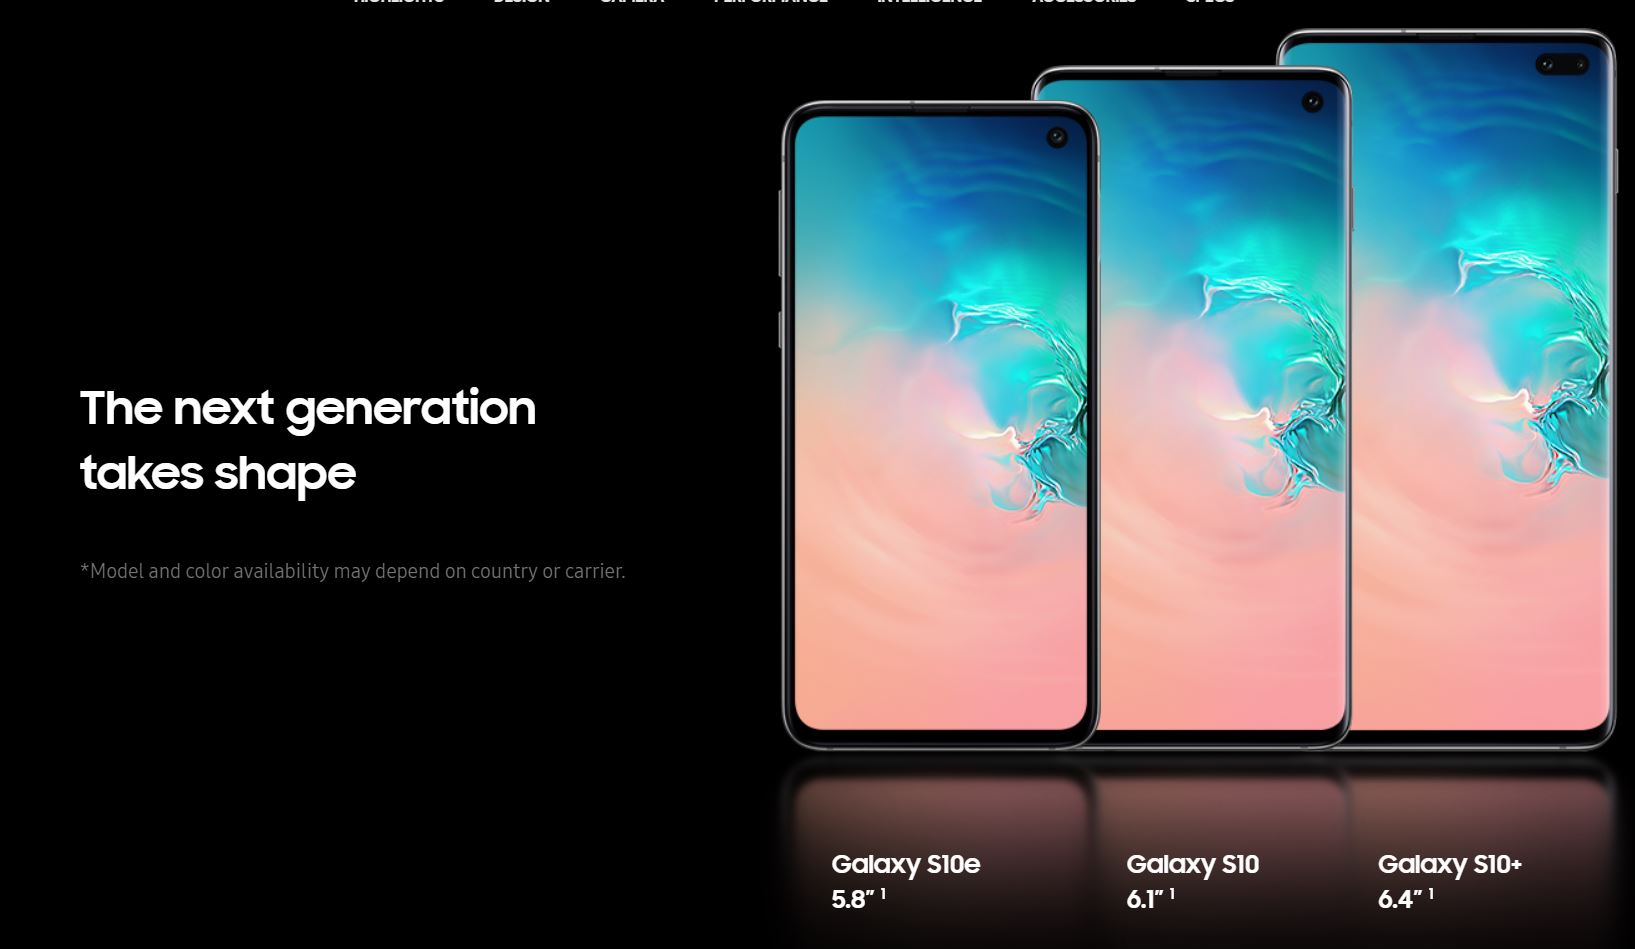 samsung galaxy s10 shapes